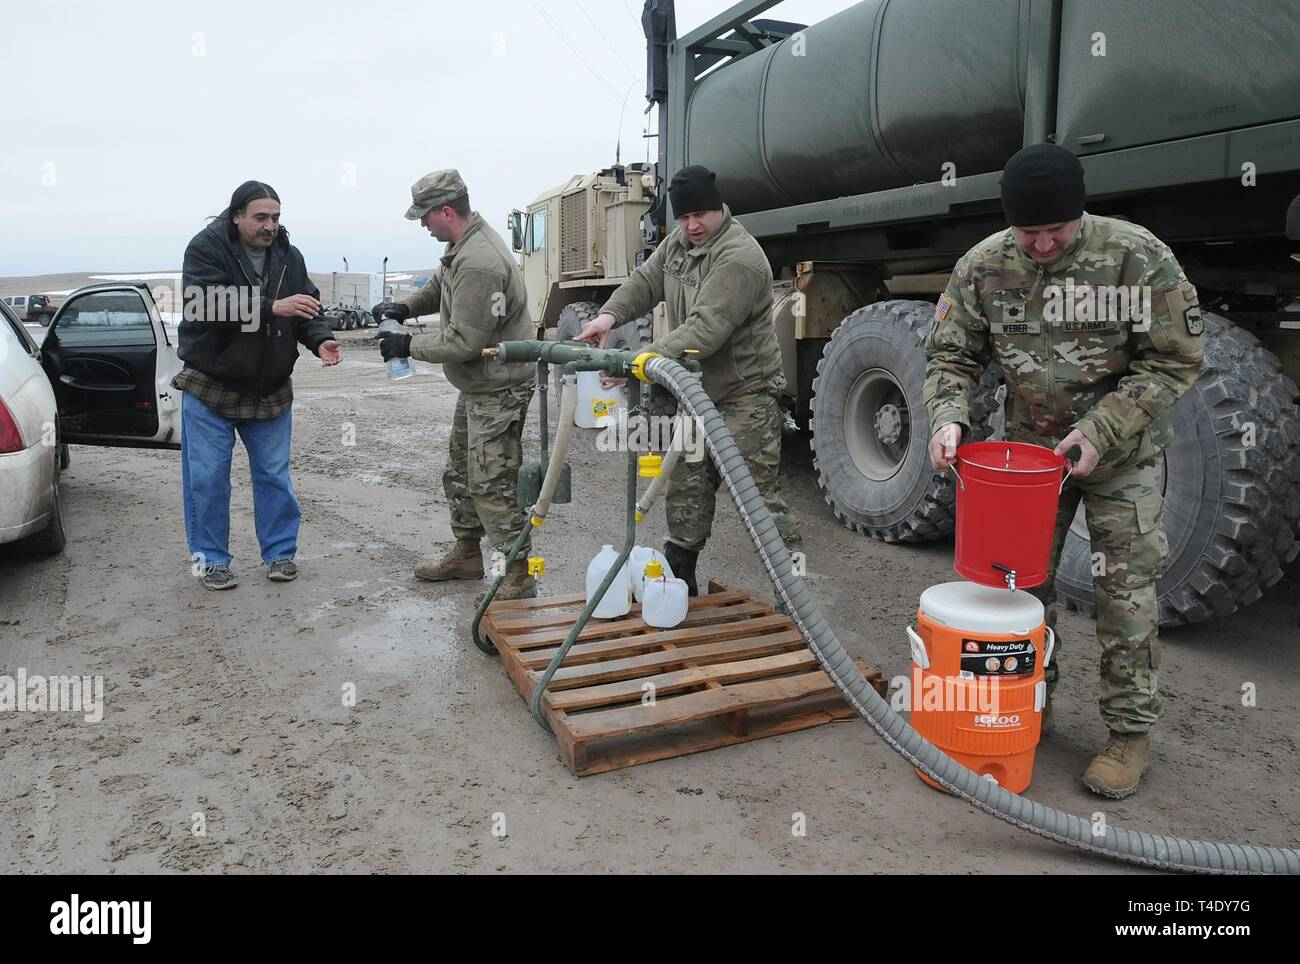 From left) South Dakota Army National Guard Soldiers Spc. Tracy Lennick, Sgt. David Fuegen and Lt. Col. Lew Weber fill containers with drinkable water for residents of Sharps Corner on the Pine Ridge Reservation, S.D., March 25, 2019. Thirteen SDARNG Soldiers with Company A, 139th Brigade Support Battalion, were activated for state duty in Pine Ridge after a county waterline failed due to extreme flooding leaving residents in seven communities without water in their homes. Stock Photo